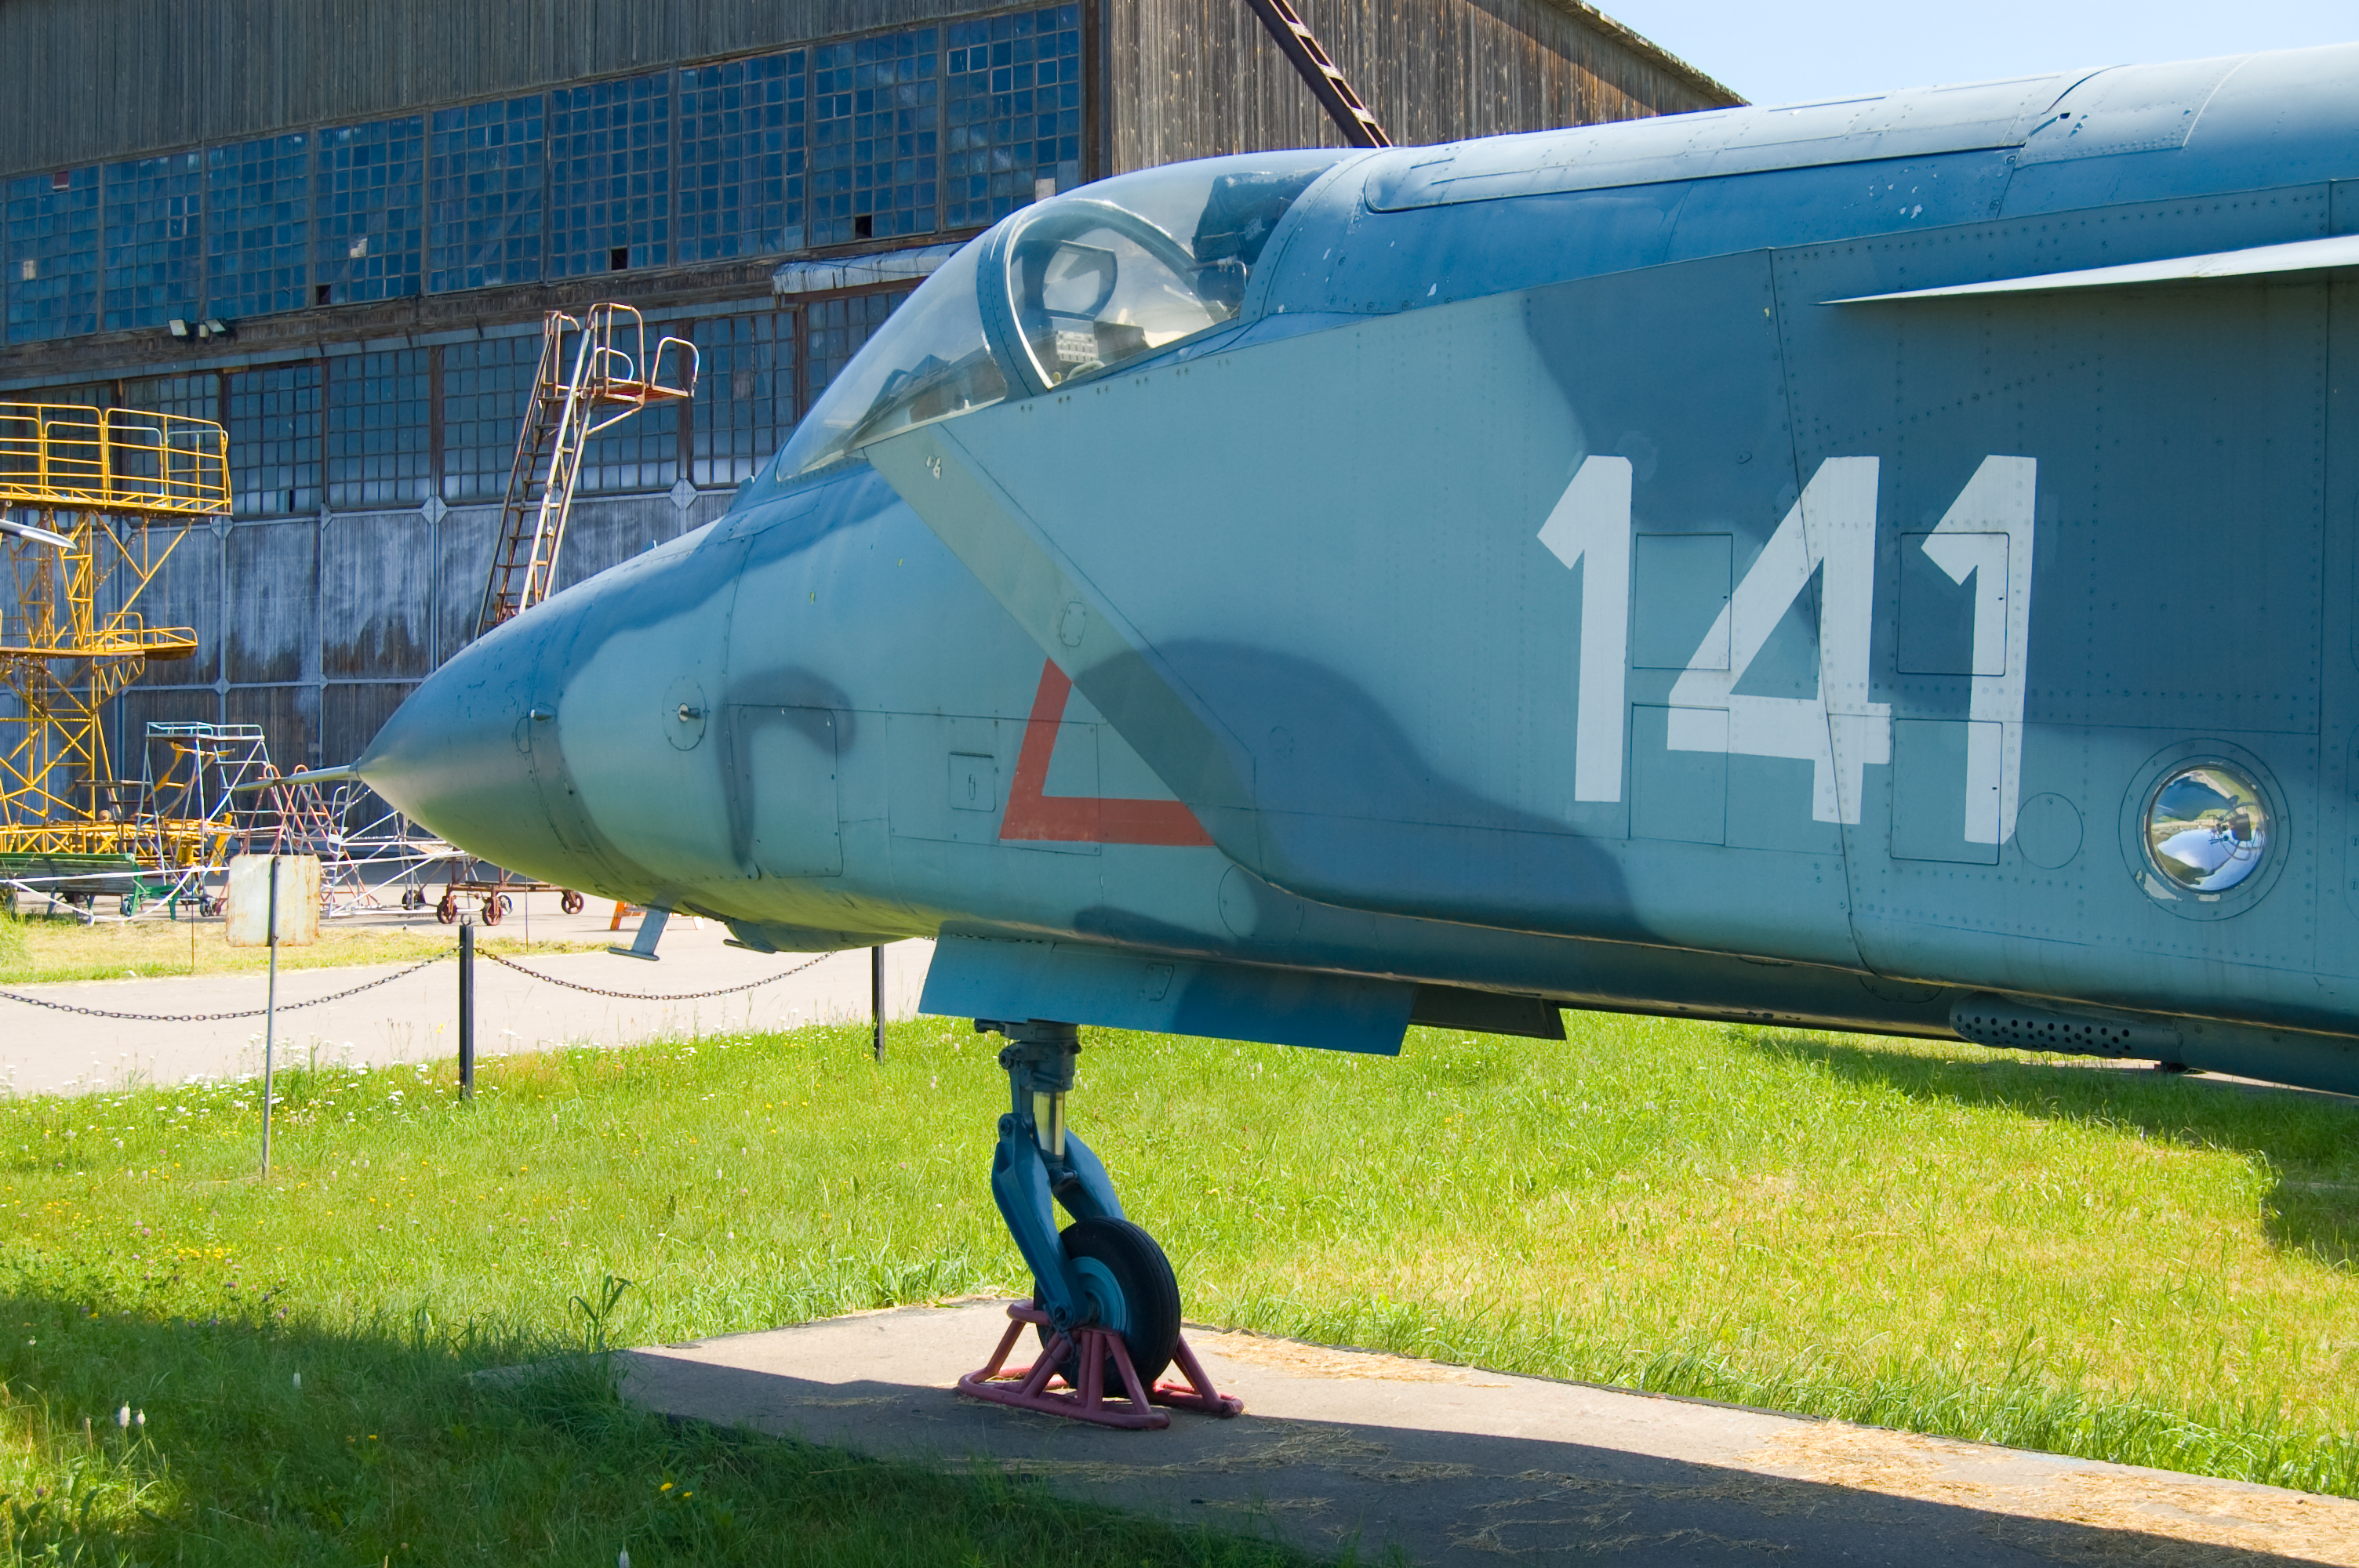 File:Yakovlev Yak-141 @ Central Air Force Museum.jpg